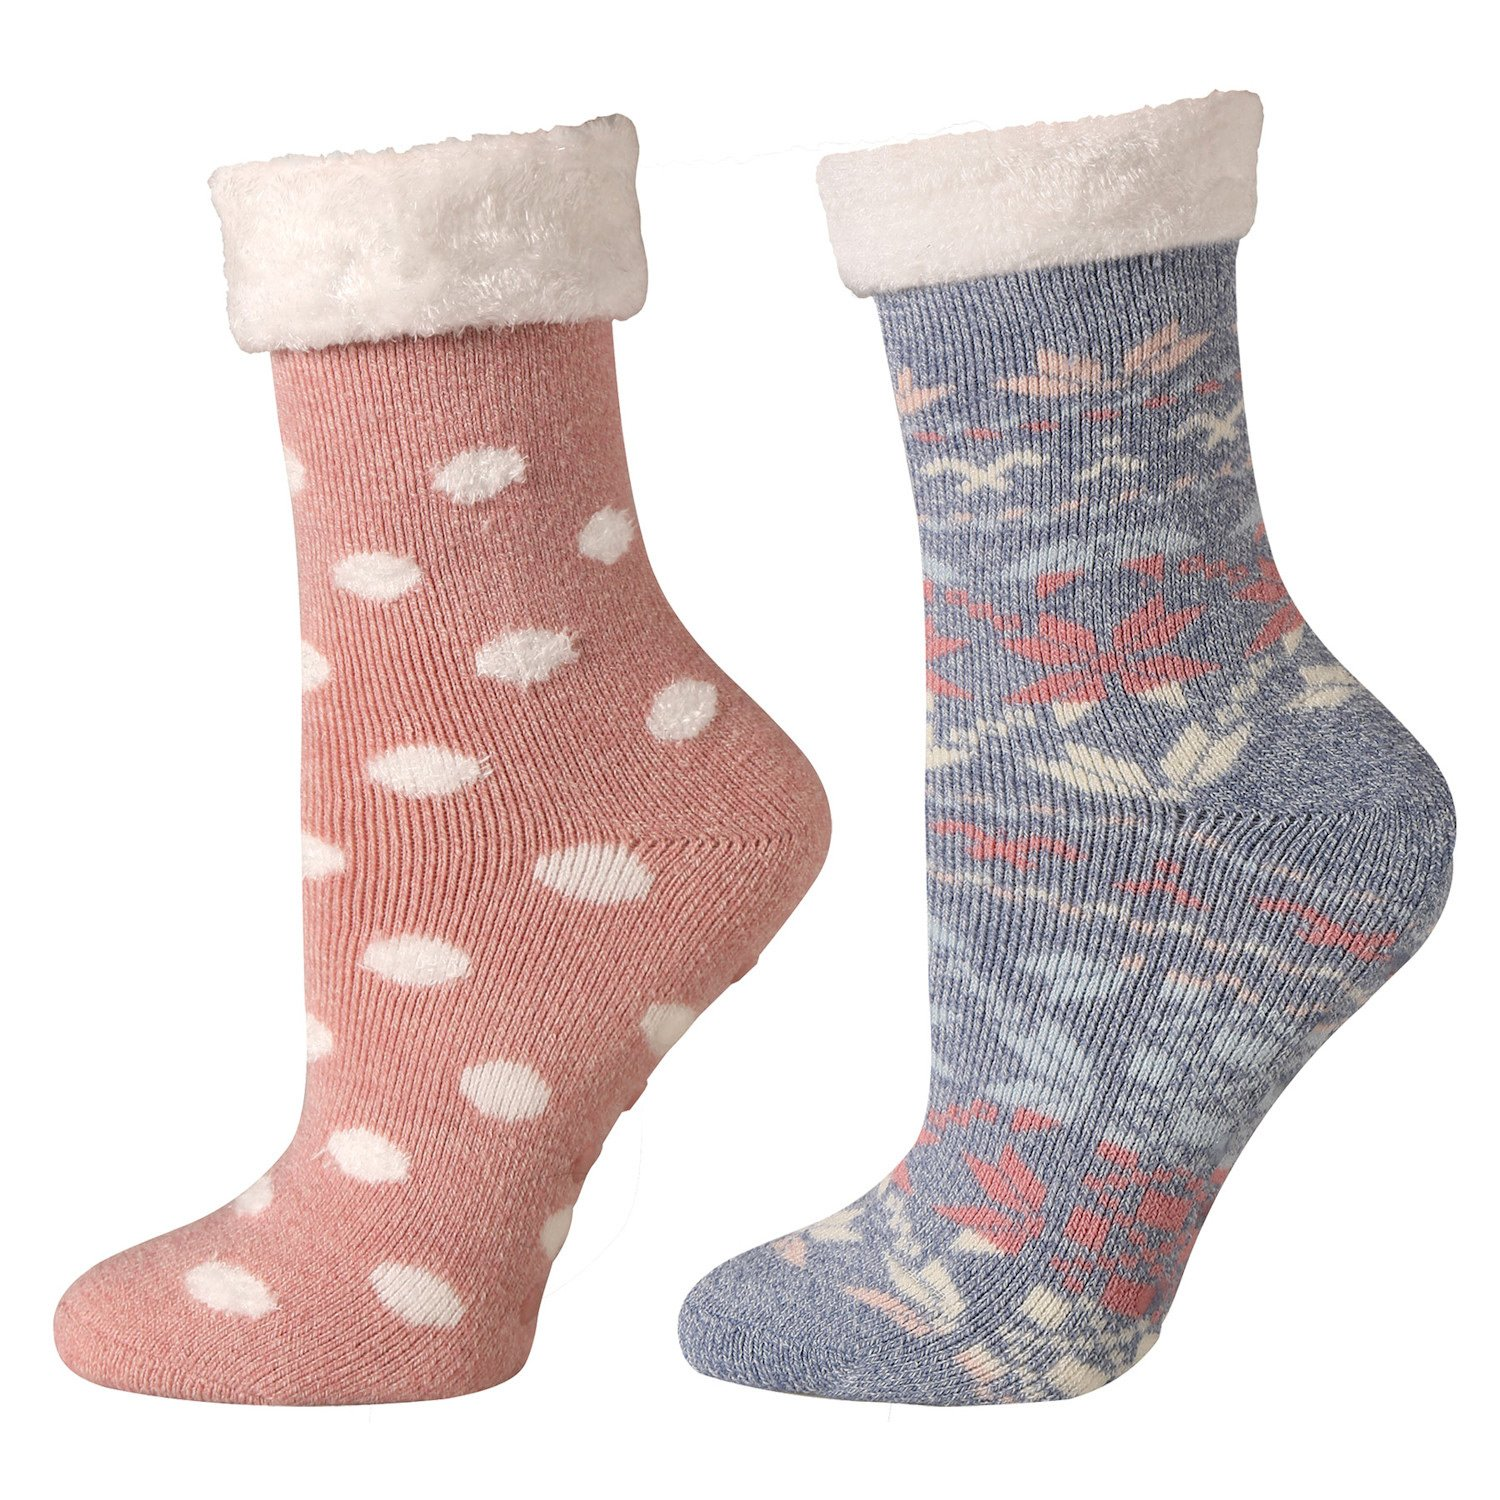 Womens Socks - Cabin and Lounge Print with Rubber Soles - Set of 2 Pink